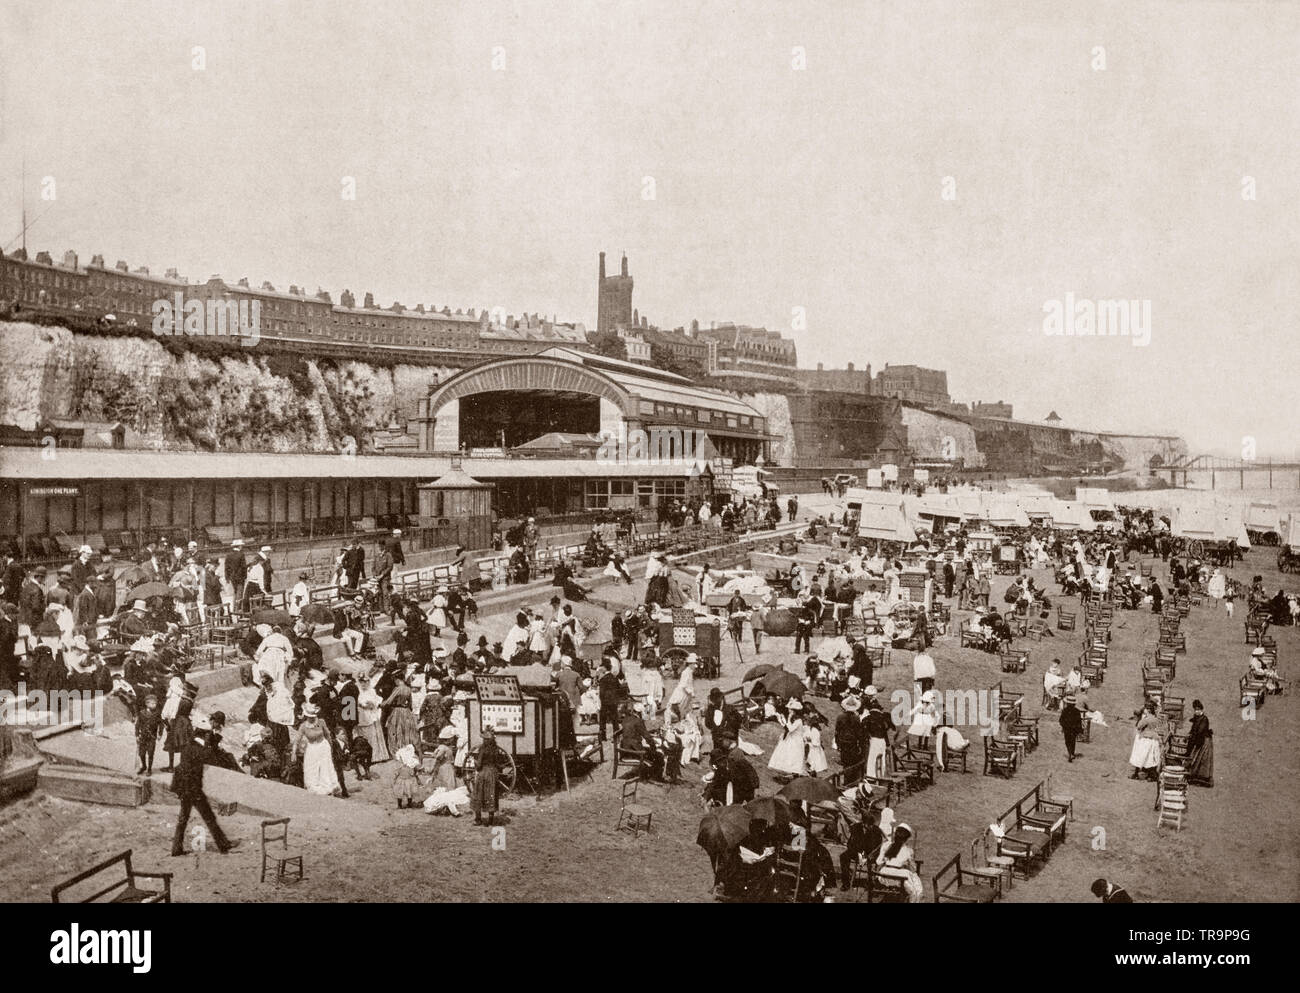 A 19th Century view of  the holiday makers on the sandy beach in Ramsgate, a seaside town in the district of Thanet in east Kent, England, famous for its glorious sands,  bathing, hotels, libraries, churches and  bracing climate. The architect A W Pugin and his sons lived in Ramsgate and built several important buildings there, including St Augustine's Church, The Grange, St Augustine's Abbey, and The Granville Hotel. - Stock Image